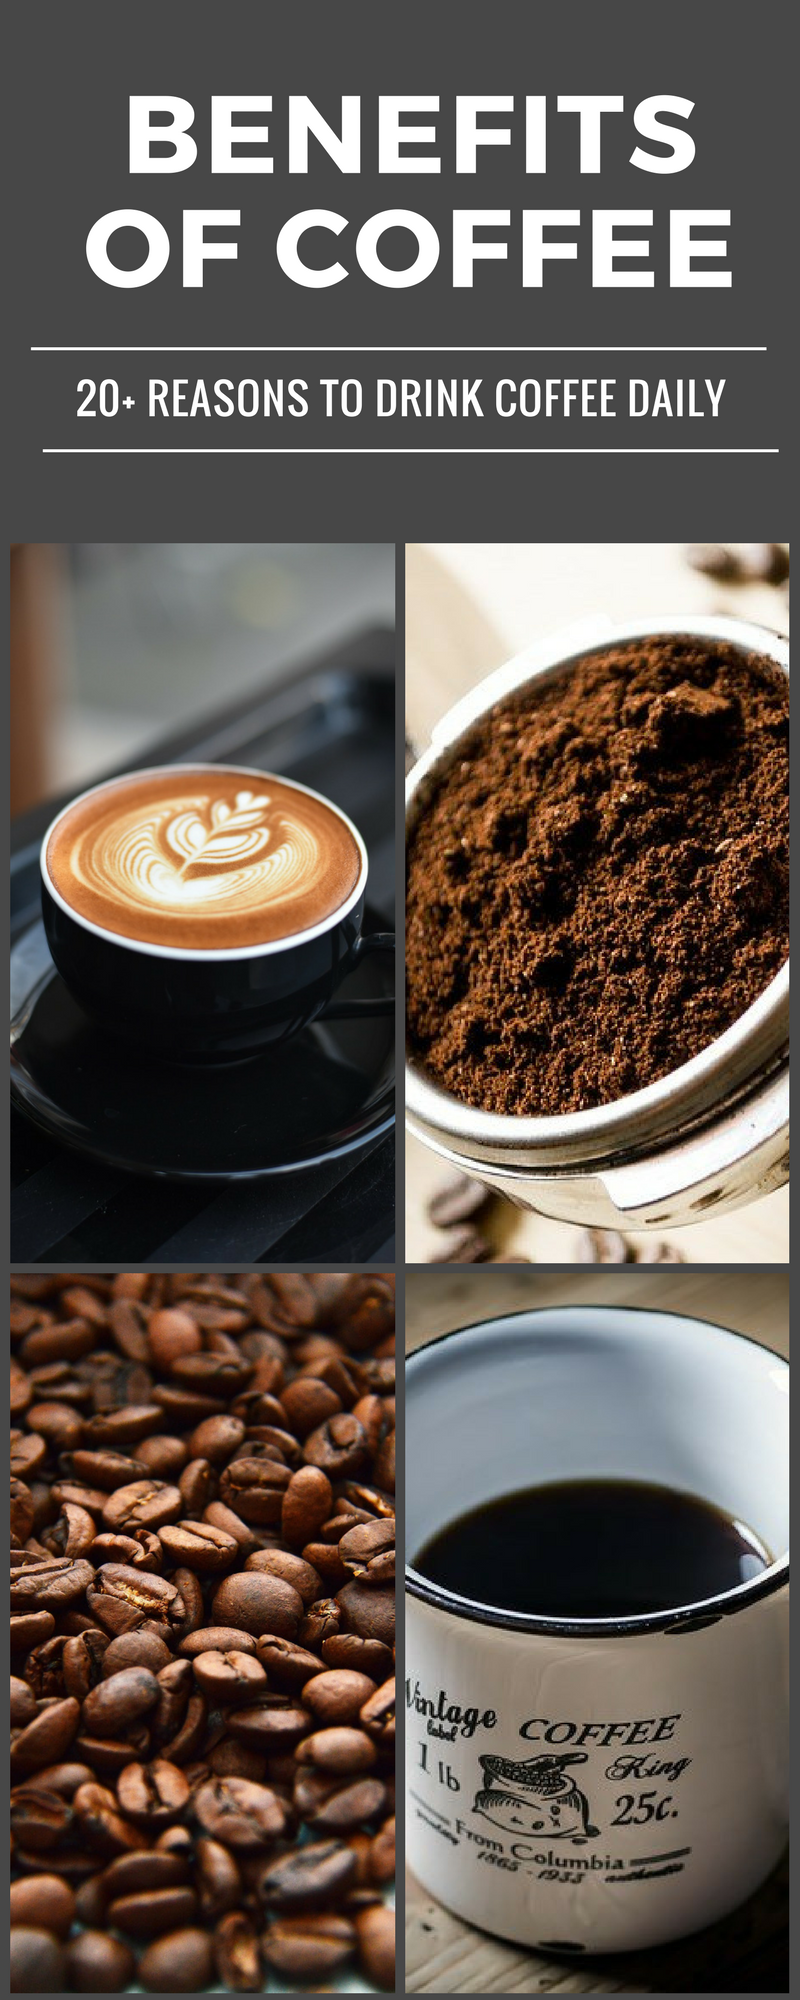 How to Choose Coffee for Health Benefits How to Choose Coffee for Health Benefits new images